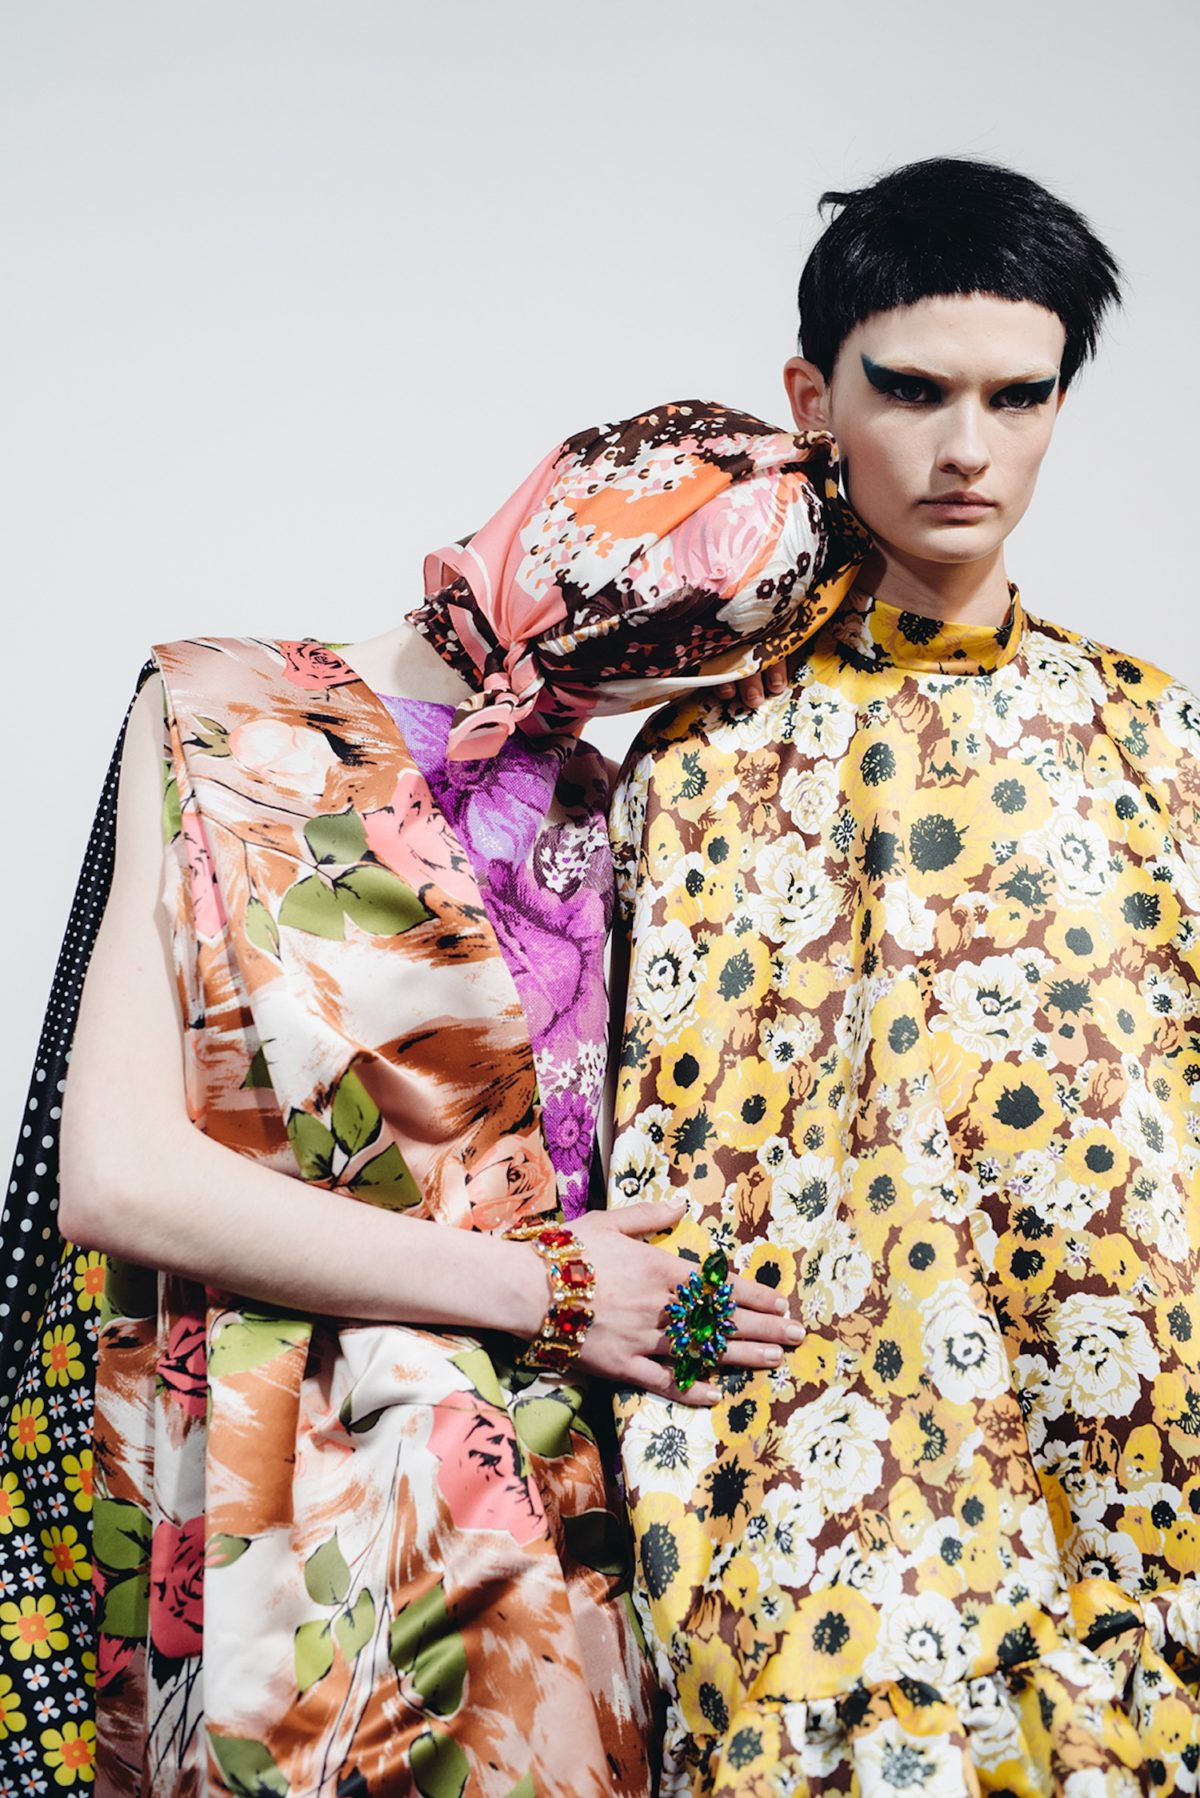 HERE'S OUR BACKSTAGE ROUNDUP OF LONDON FASHION WEEK WOMENSWEAR